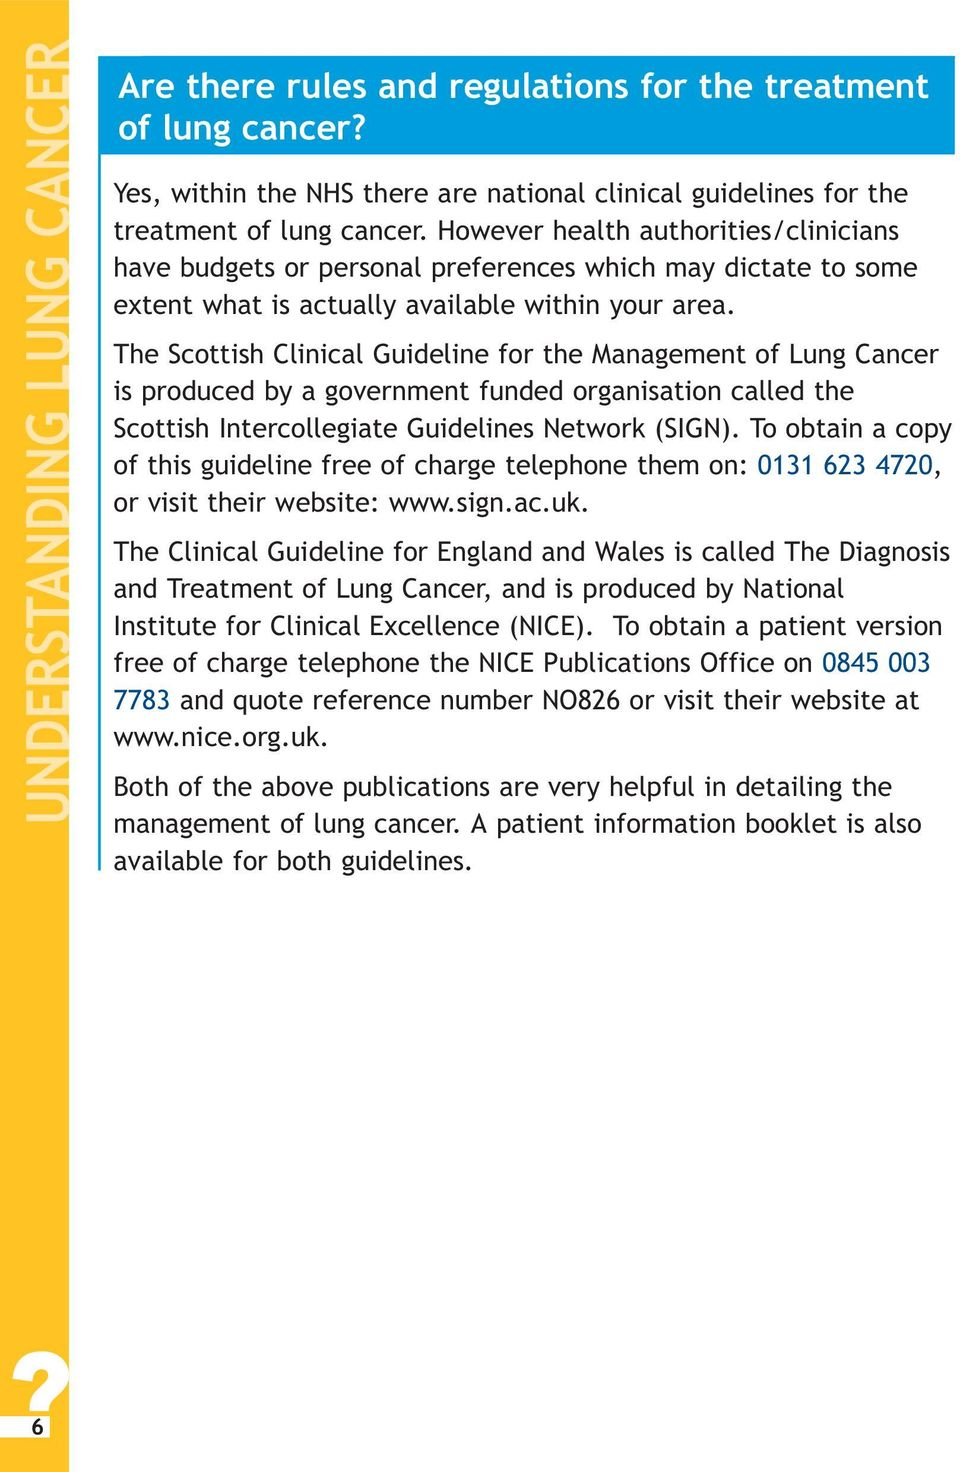 The Scottish Clinical Guideline for the Management of Lung Cancer is produced by a government funded organisation called the Scottish Intercollegiate Guidelines Network (SIGN).